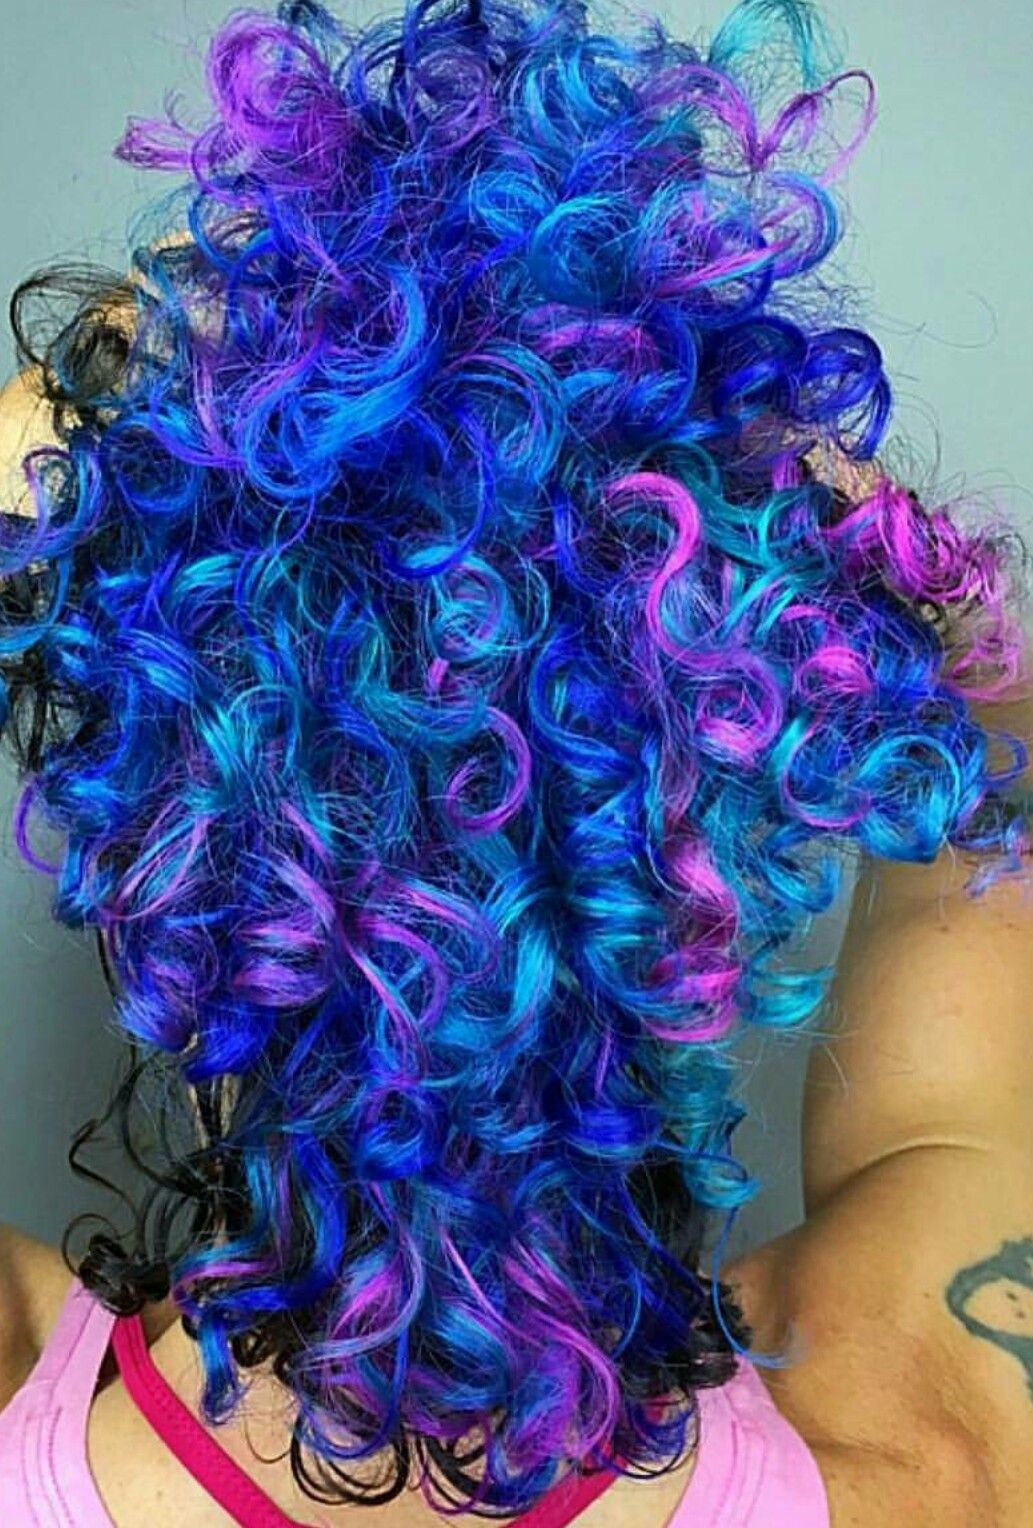 Blue Purple Mixed Dyed Curly Hair Iroirocolors Dyed Curly Hair Colored Curly Hair Dyed Natural Hair